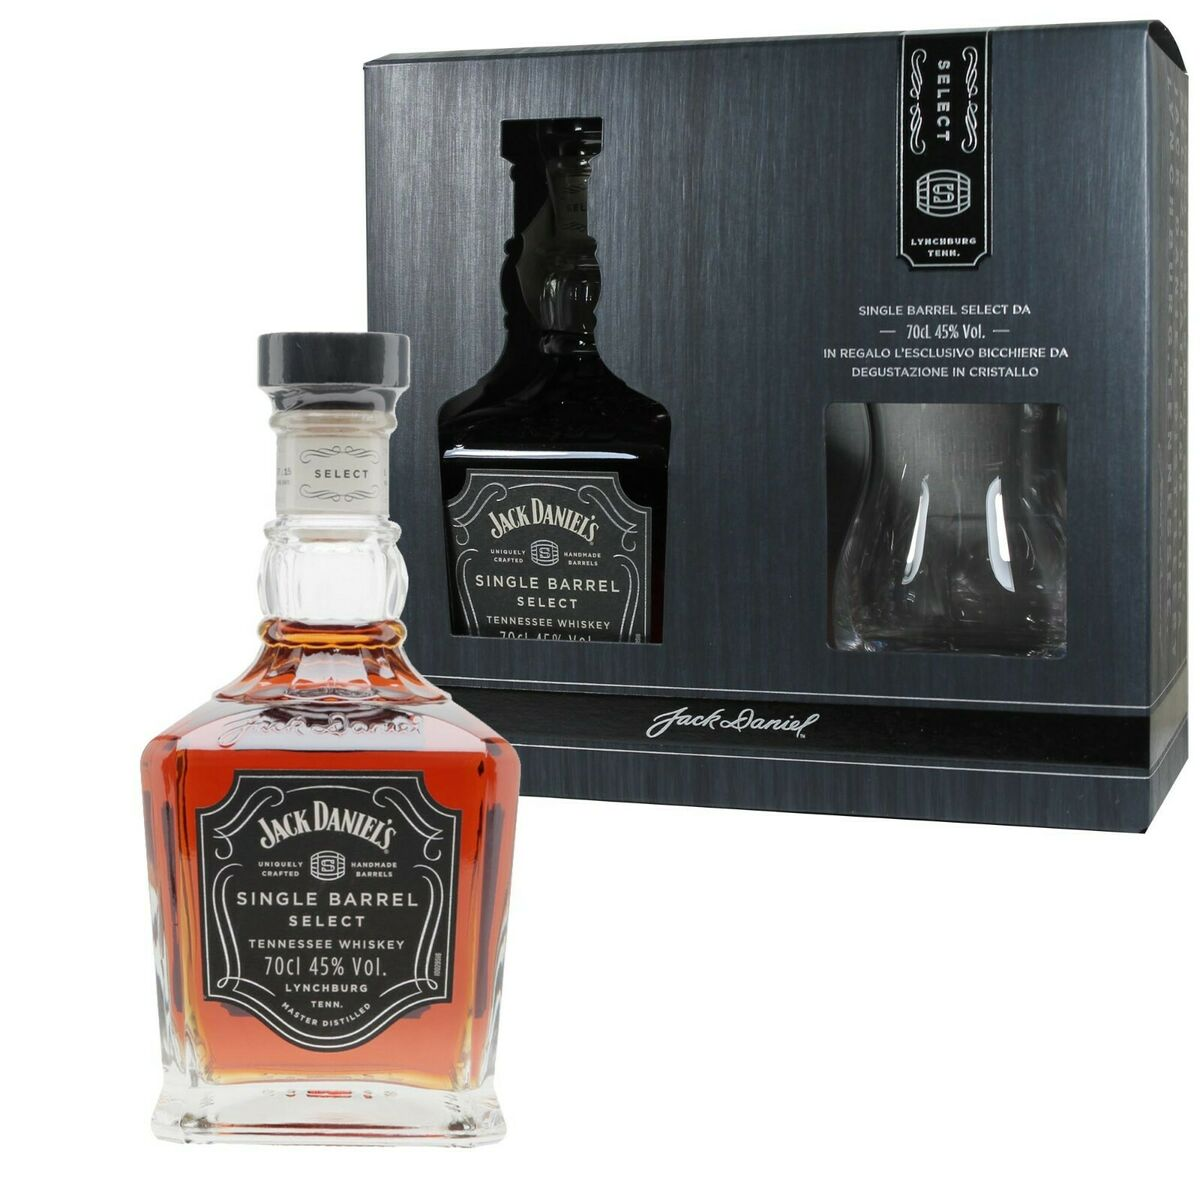 Jack daniel s whiskey single barrel select daniels whisky calice idea regalo 